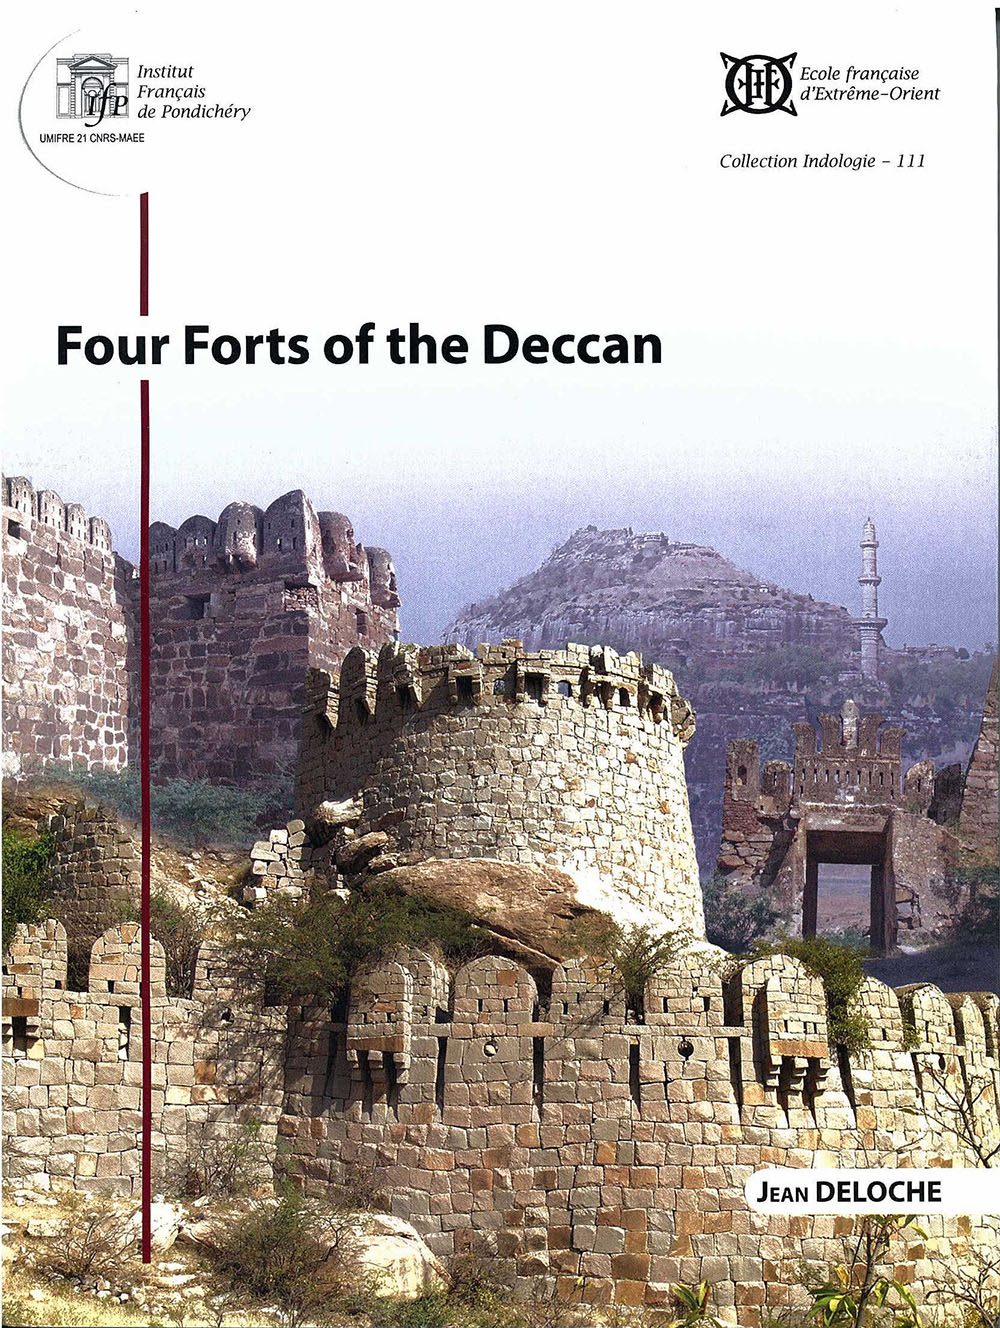 Four Forts of the Deccan